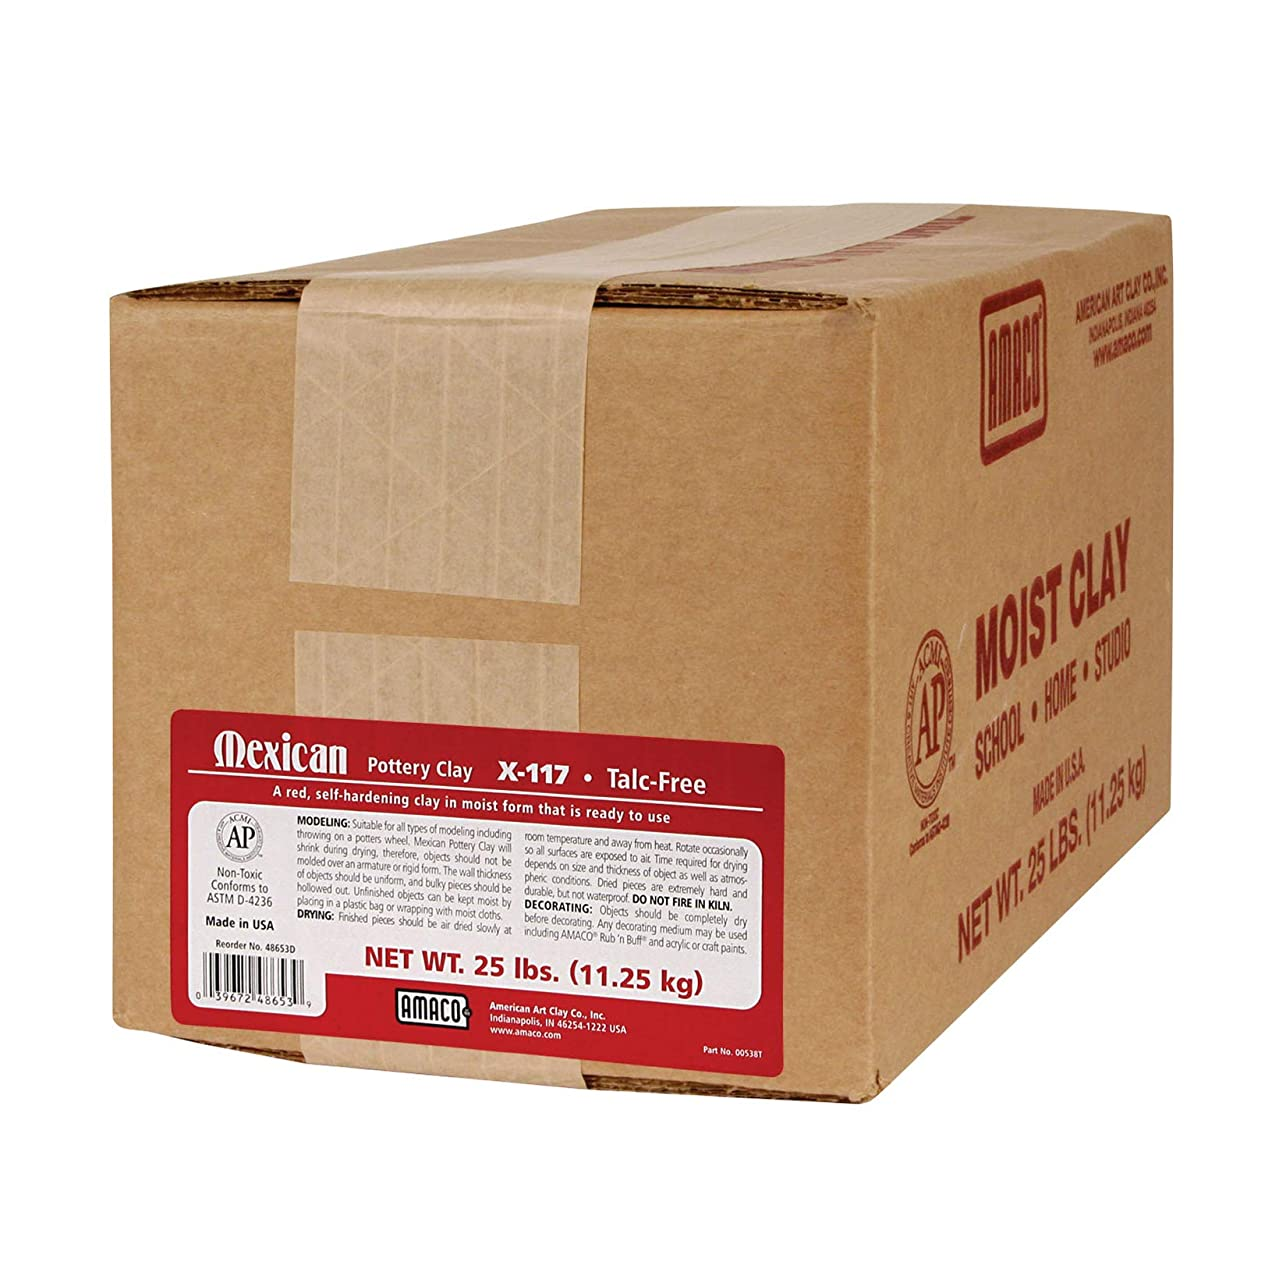 AMACO AMA48653D Mexican Pottery Self-Hardening Clay, 25 lbs.